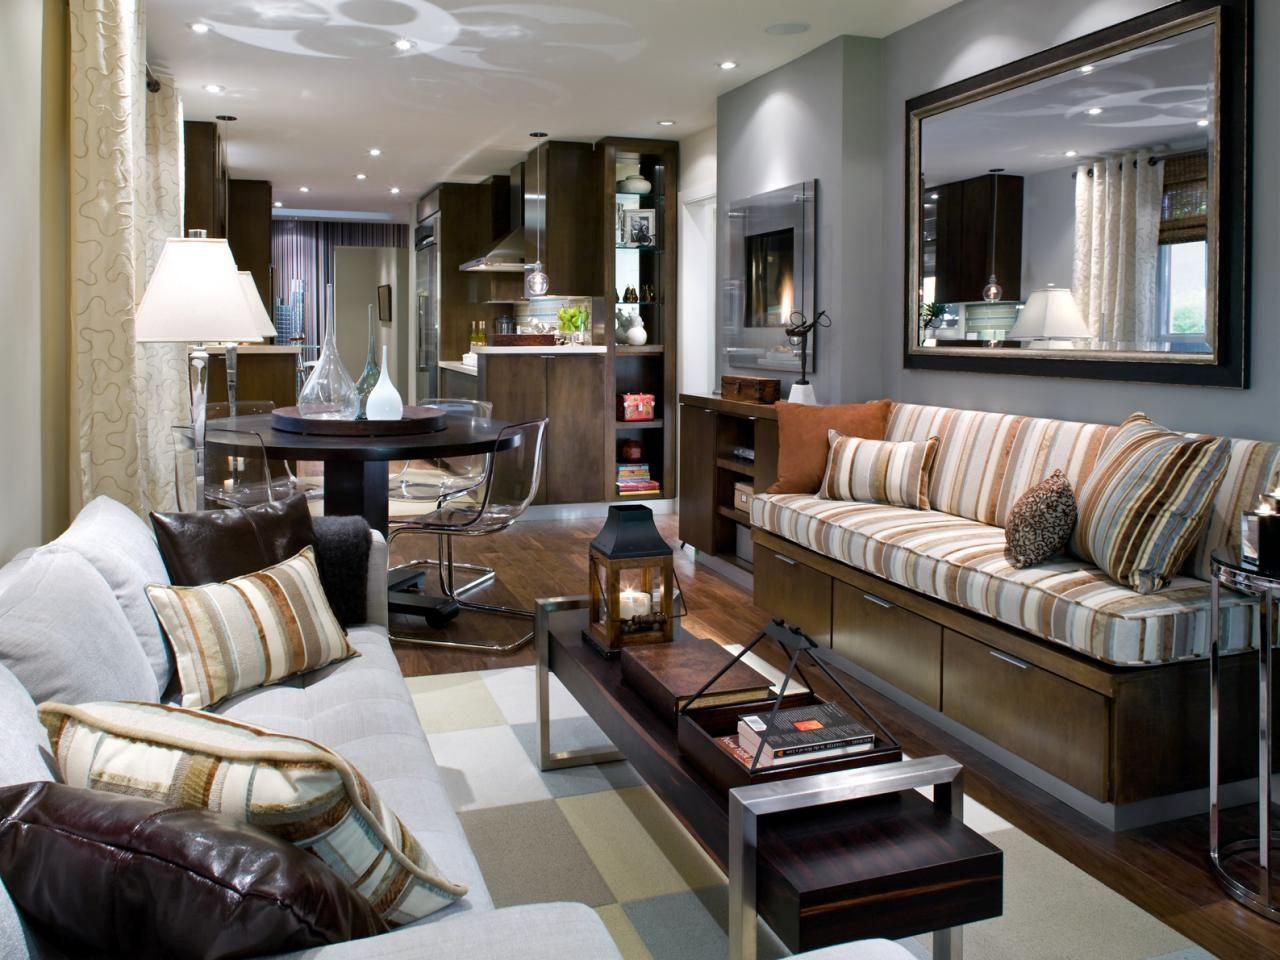 Best living room designs by candice - Top 12 Living Rooms By Candice Olson